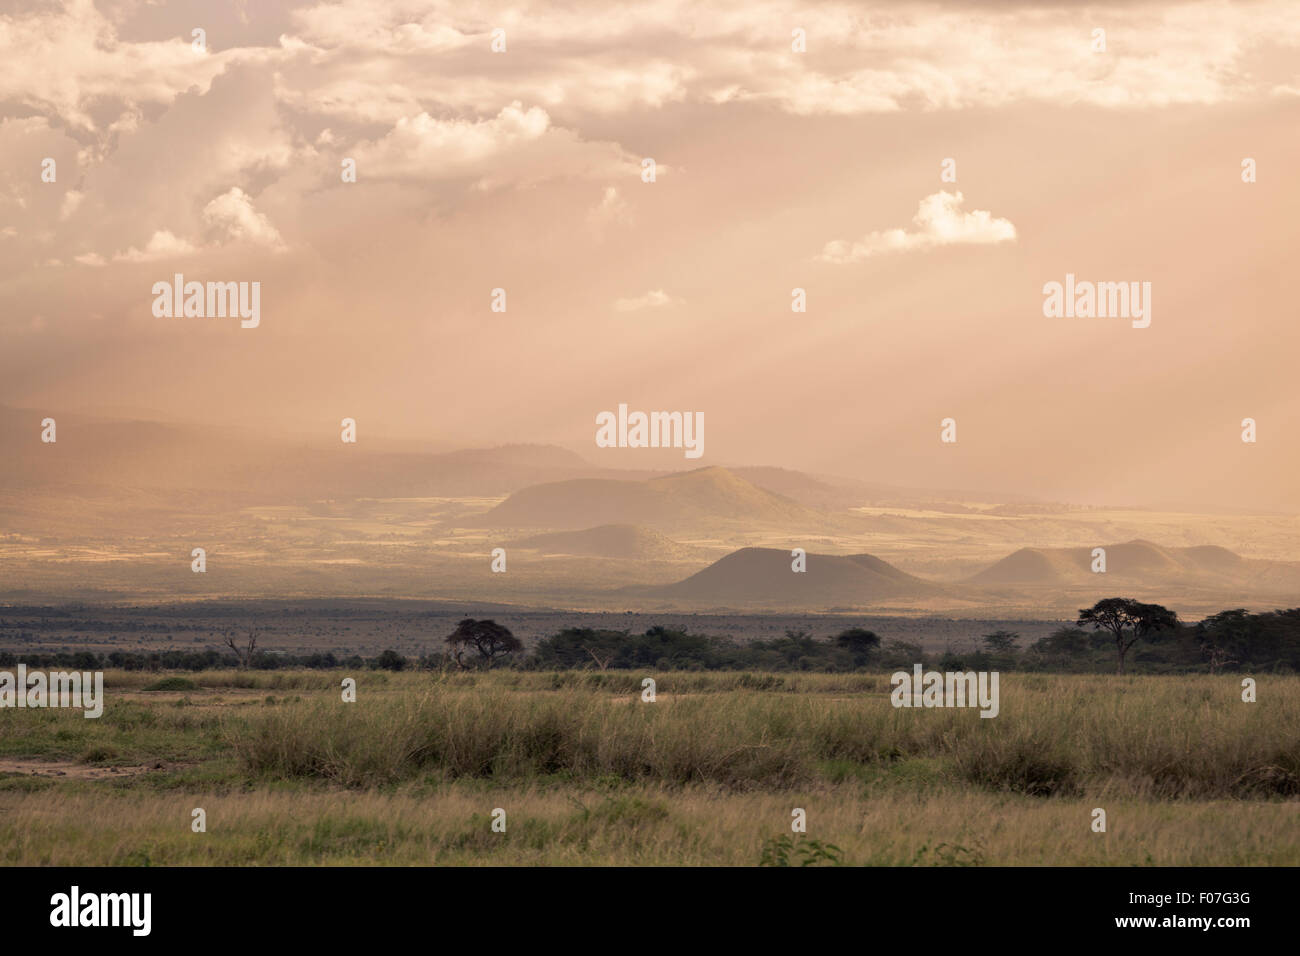 Volcanic craters on the flank of Mount Kilimanjaro seen from Amboseli National Park in Kenya with beautiful evening - Stock Image